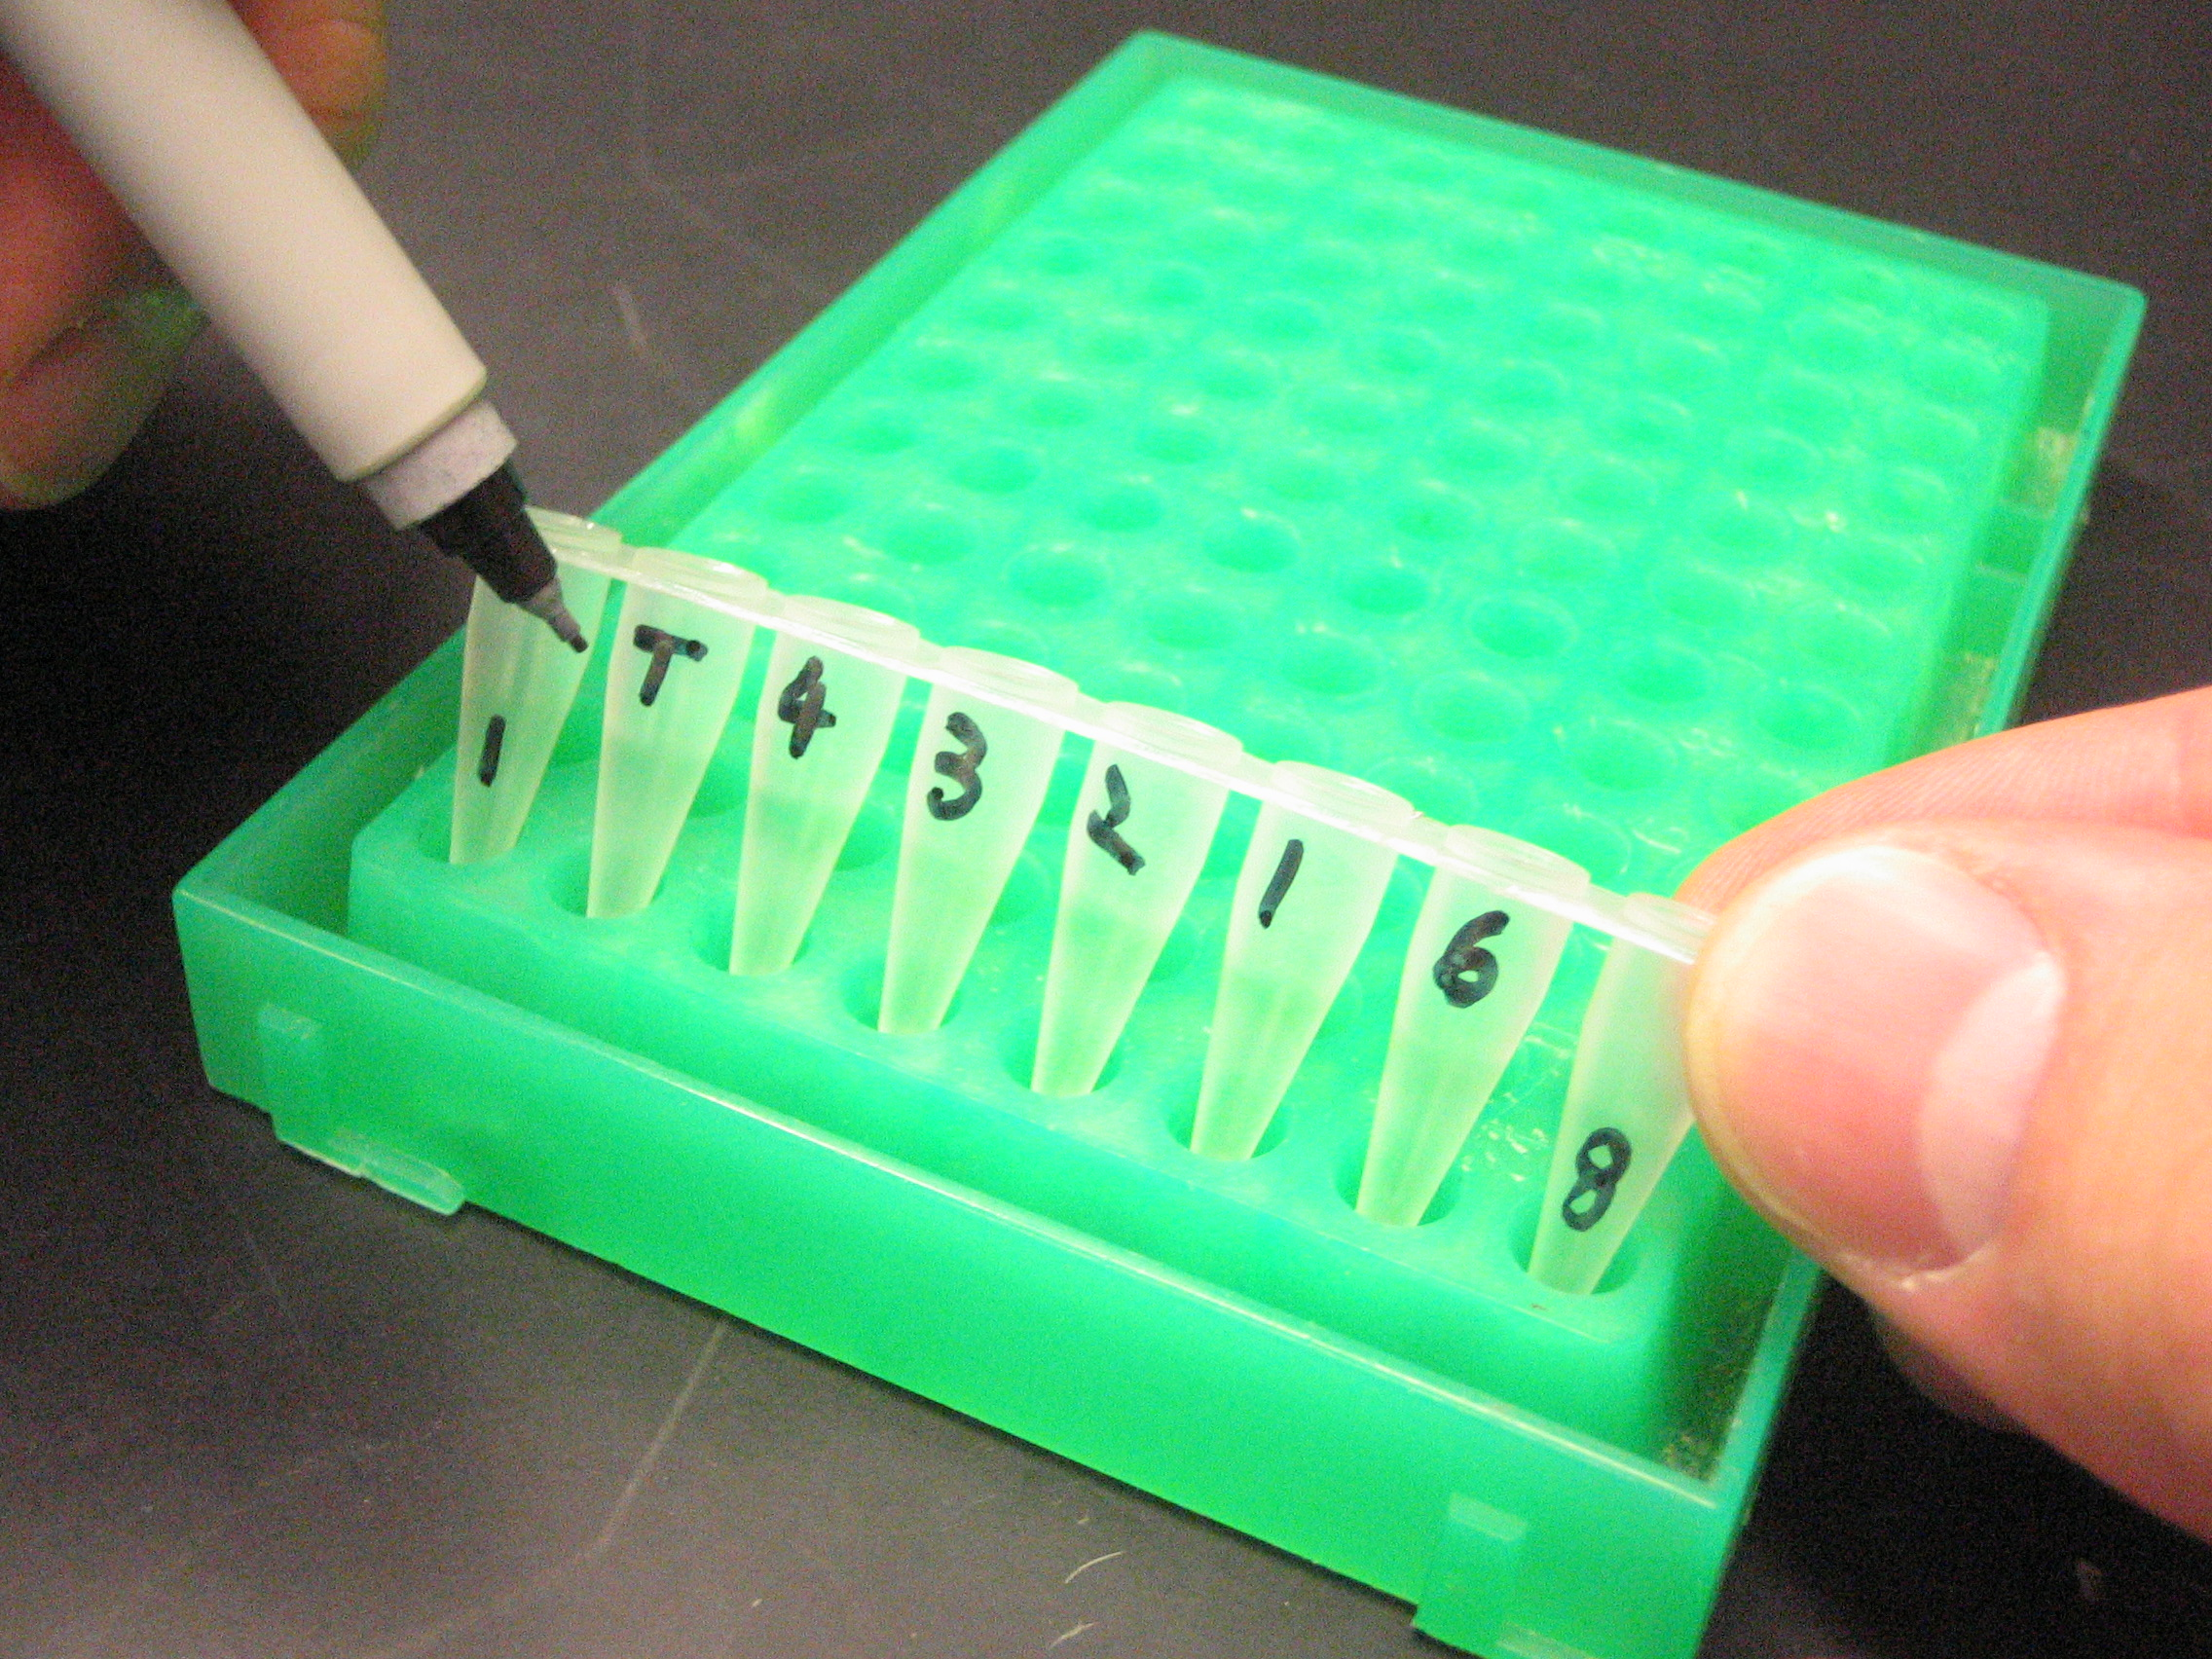 labelling samples with order number and marking which the first sample is